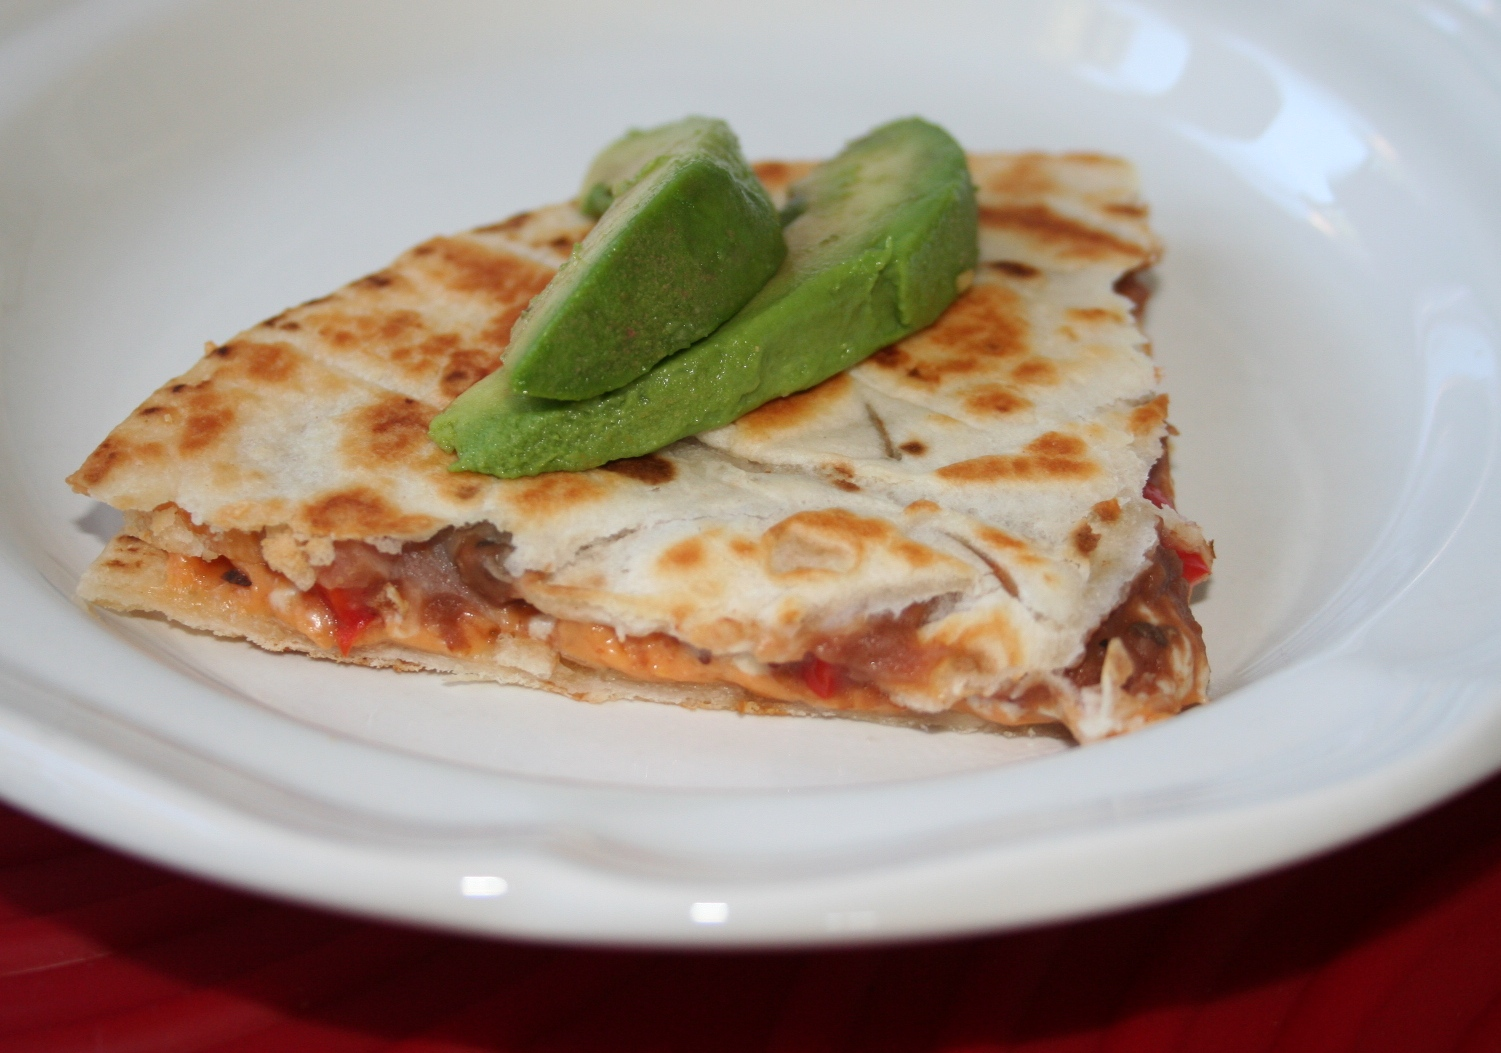 Easy Vegan Meals » Blog Archive » Cheese Quesadilla